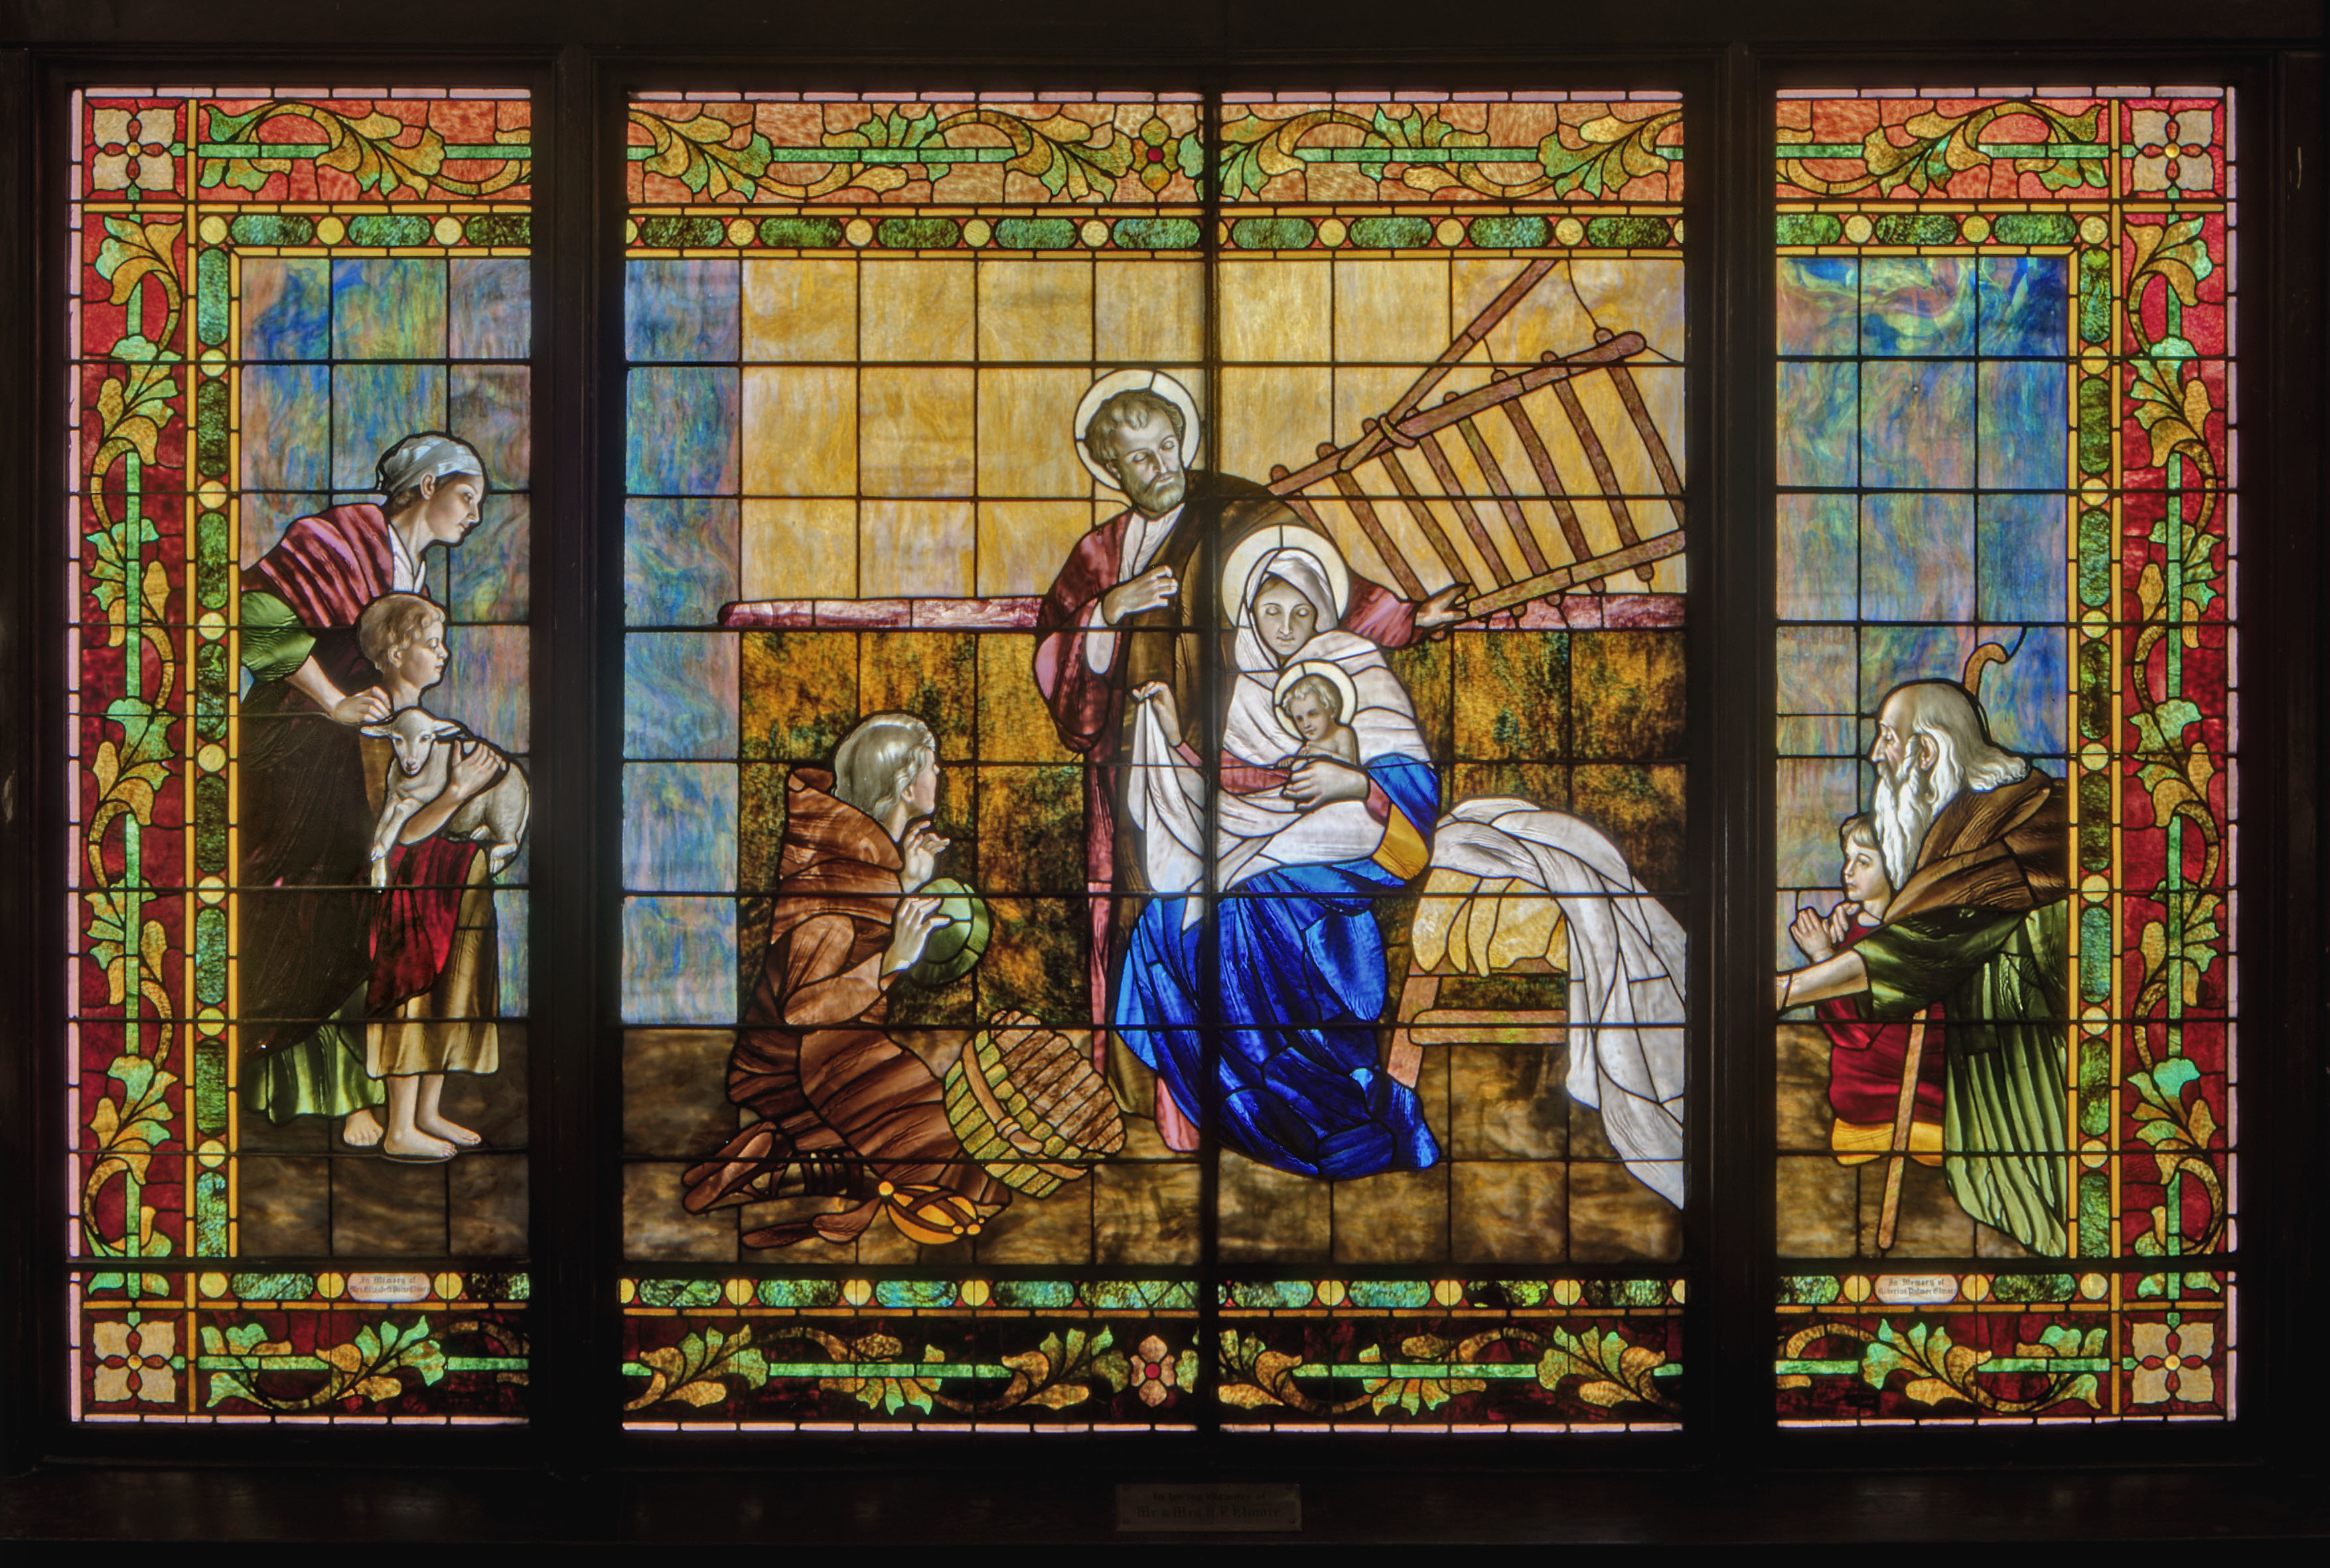 A image of a stained glass window inside the church.